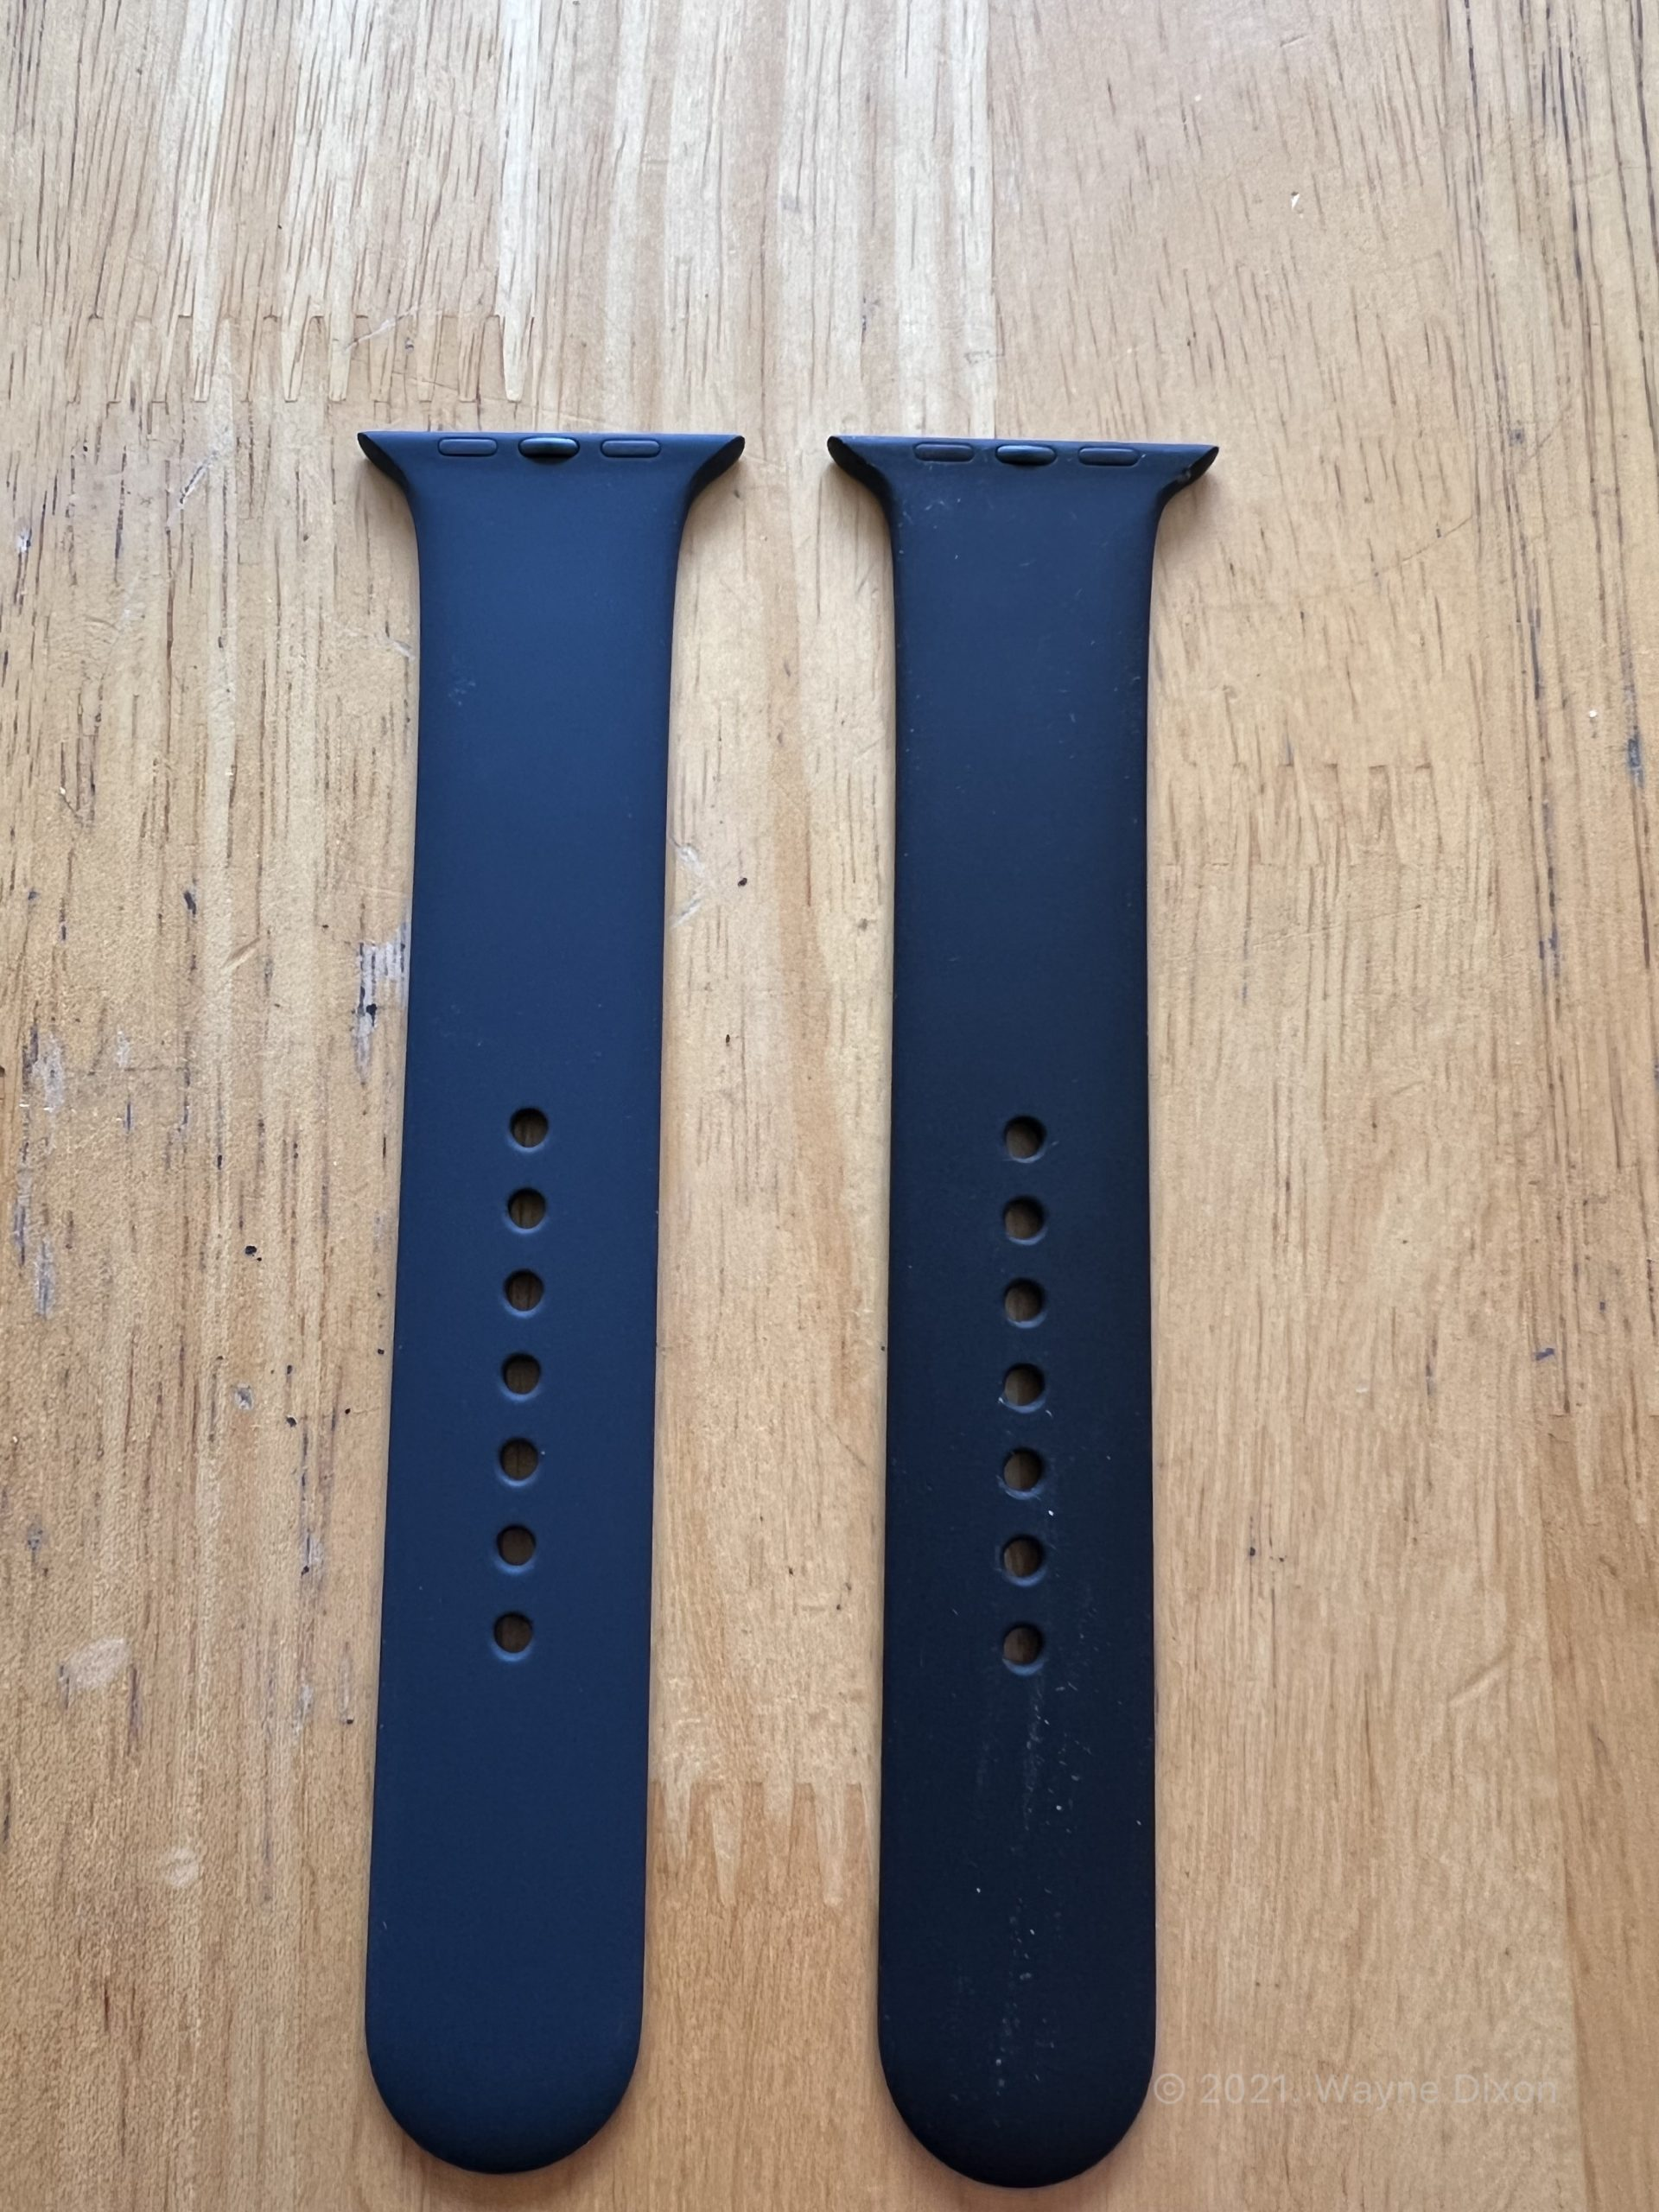 Midnight Sport Band and Black Sport Band